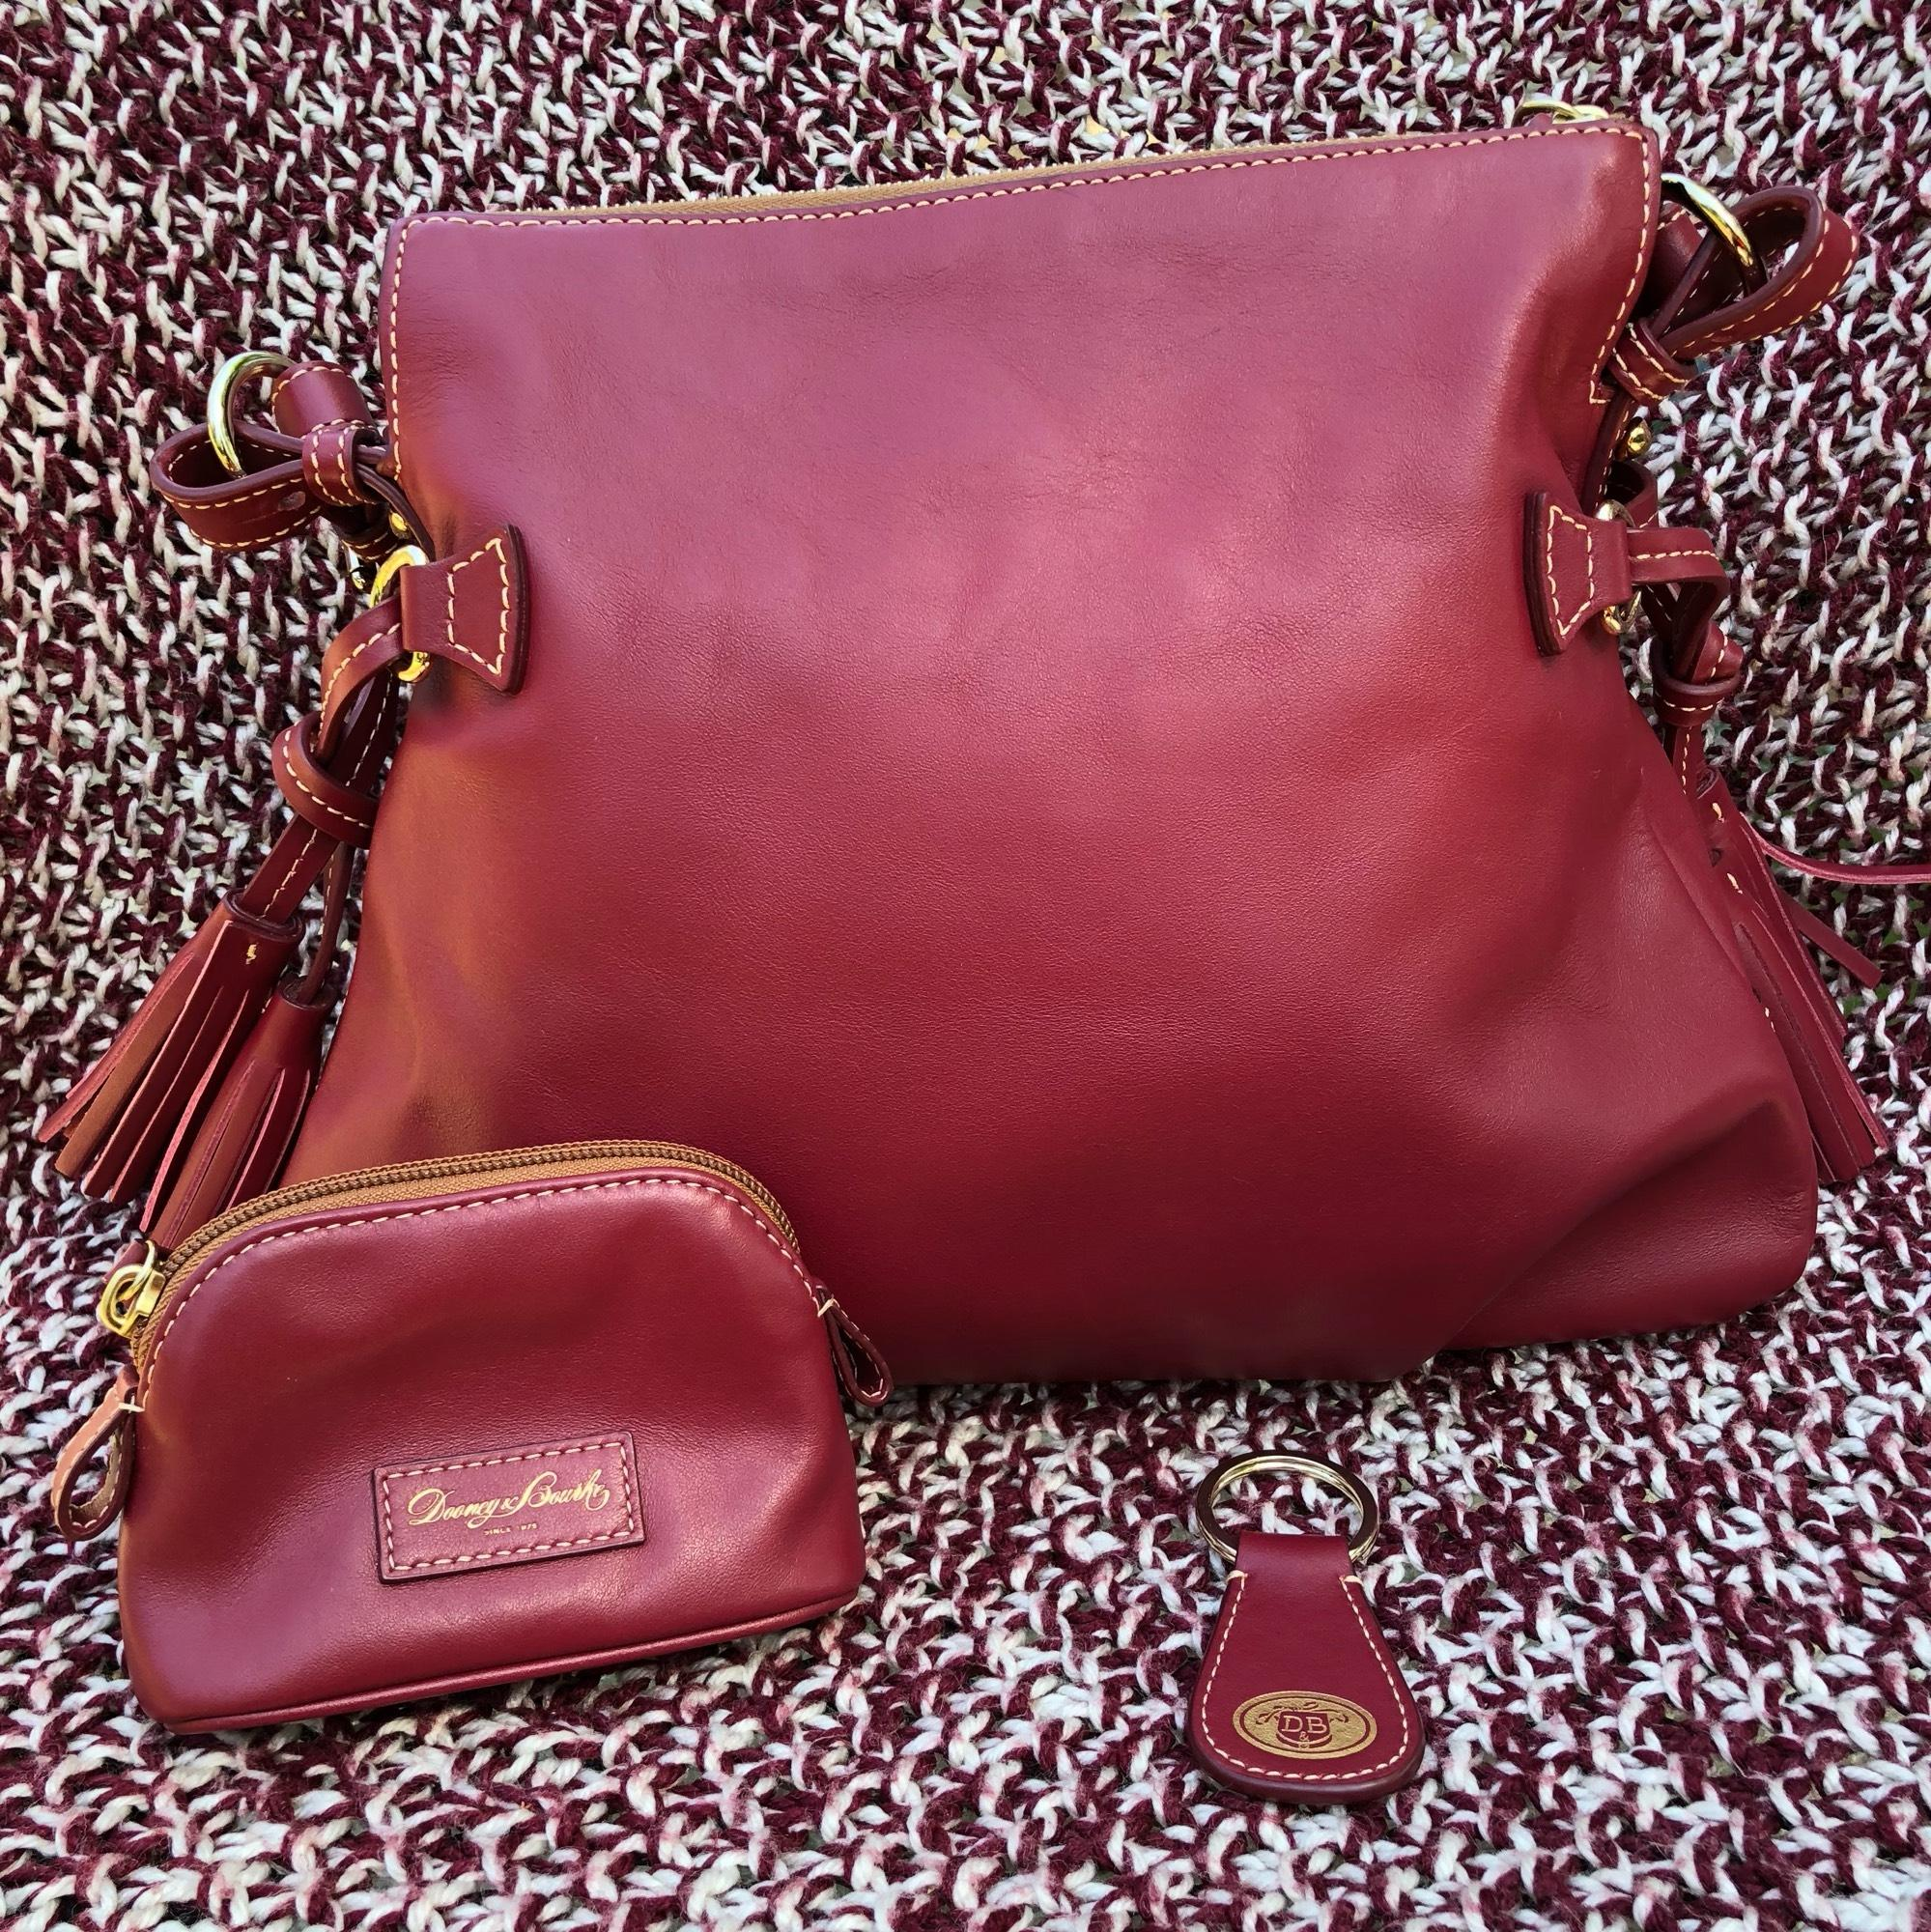 ... coupon dooney bourke teagan mulberry smooth leather hobo bag tradesy  c9a24 403bf ef66f020c9b1f